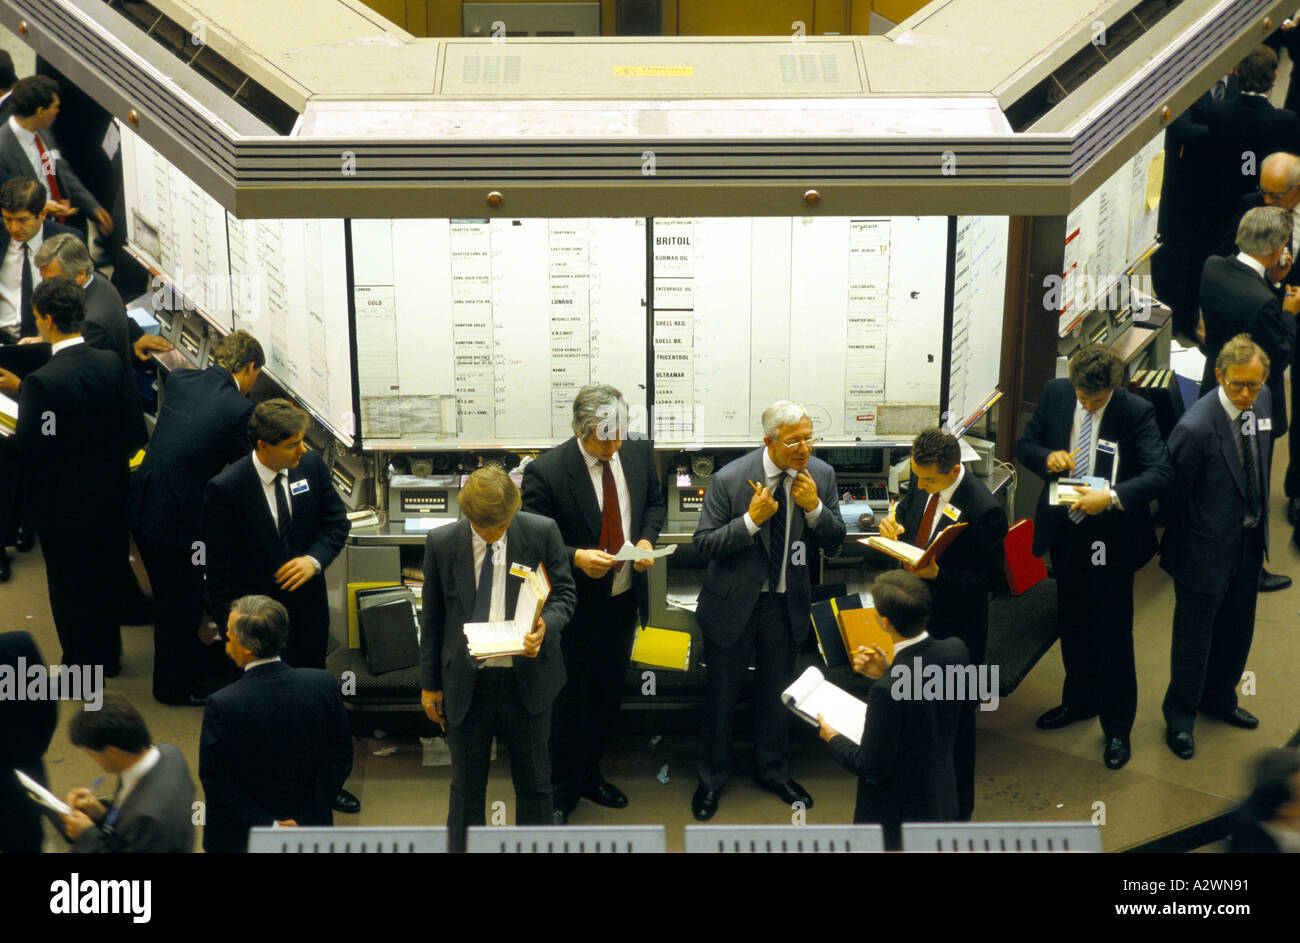 Stockbrokers On The Trading Floor Of The London Stock